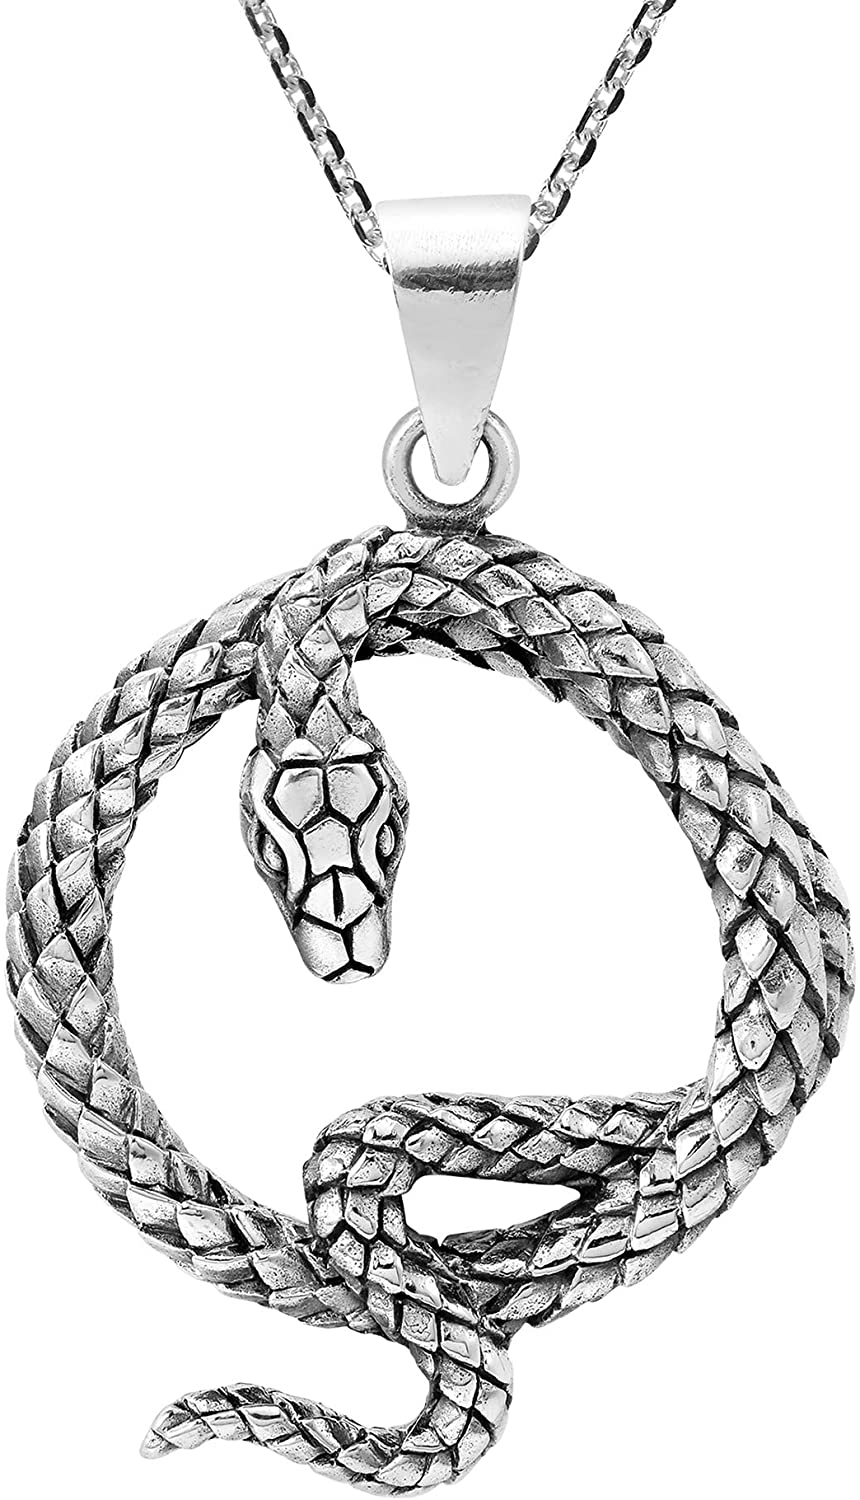 AeraVida Edgy Serpent Coiled Snake .925 Sterling Silver Pendant Necklace